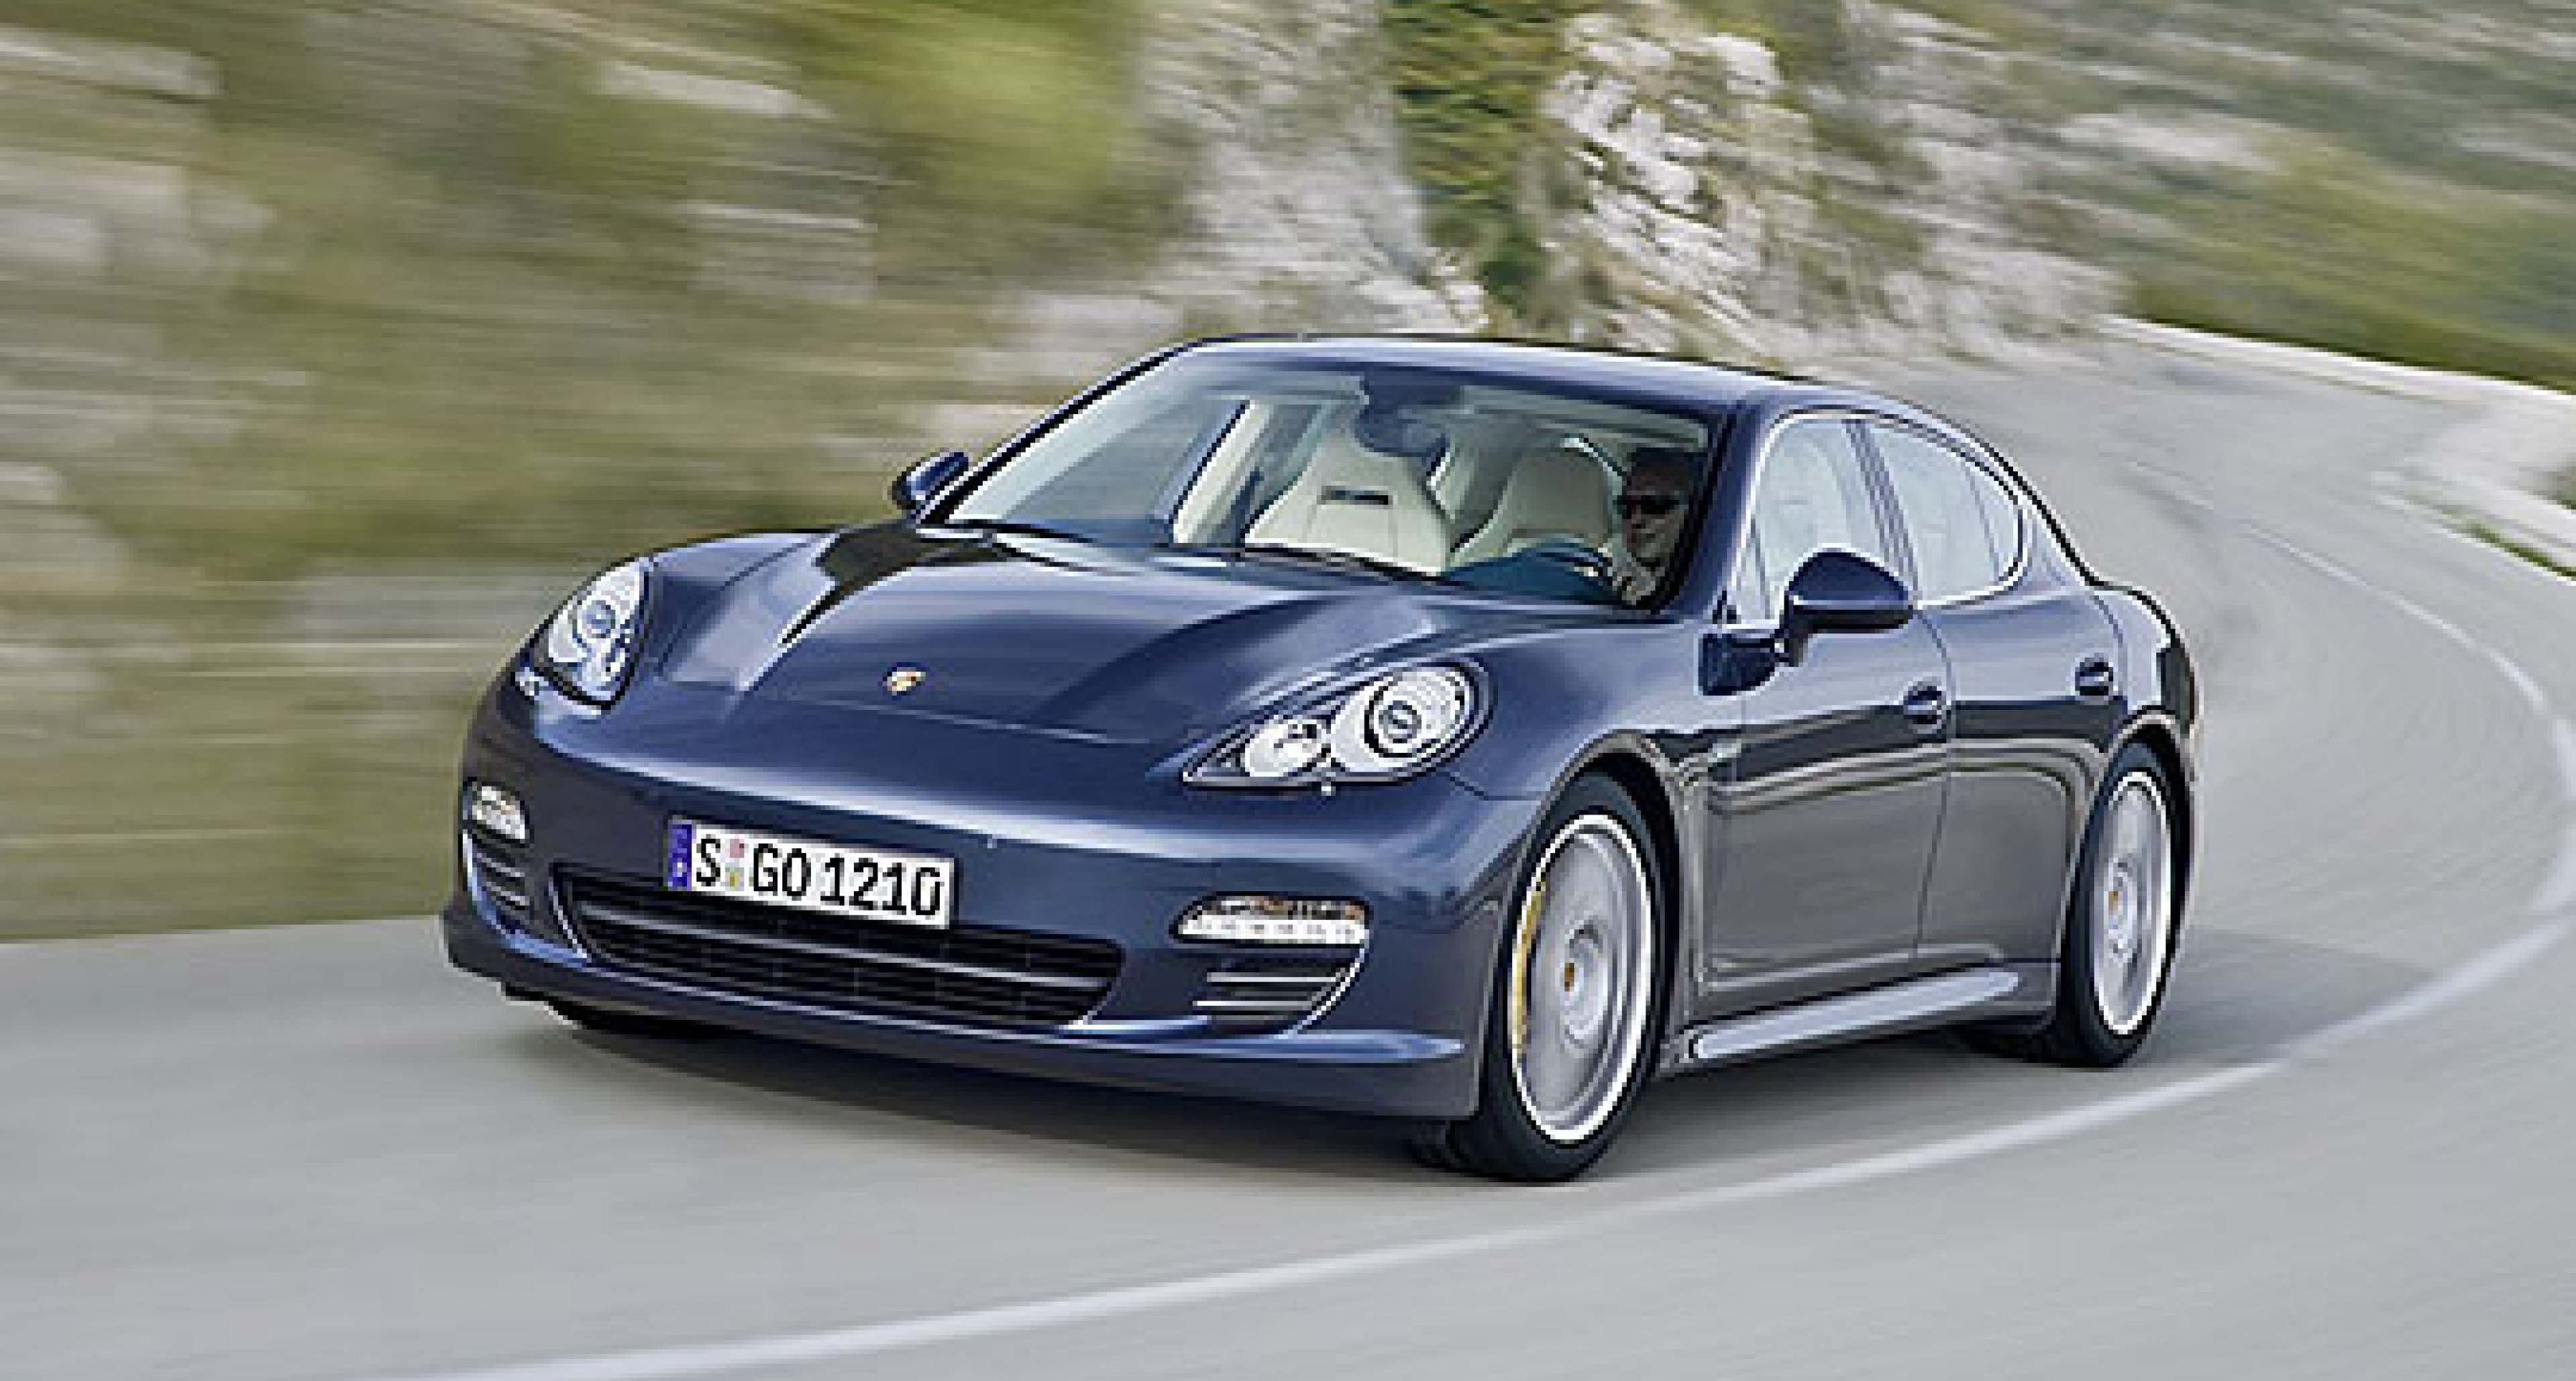 Porsche to Launch Panamera at Auto Shanghai 2009